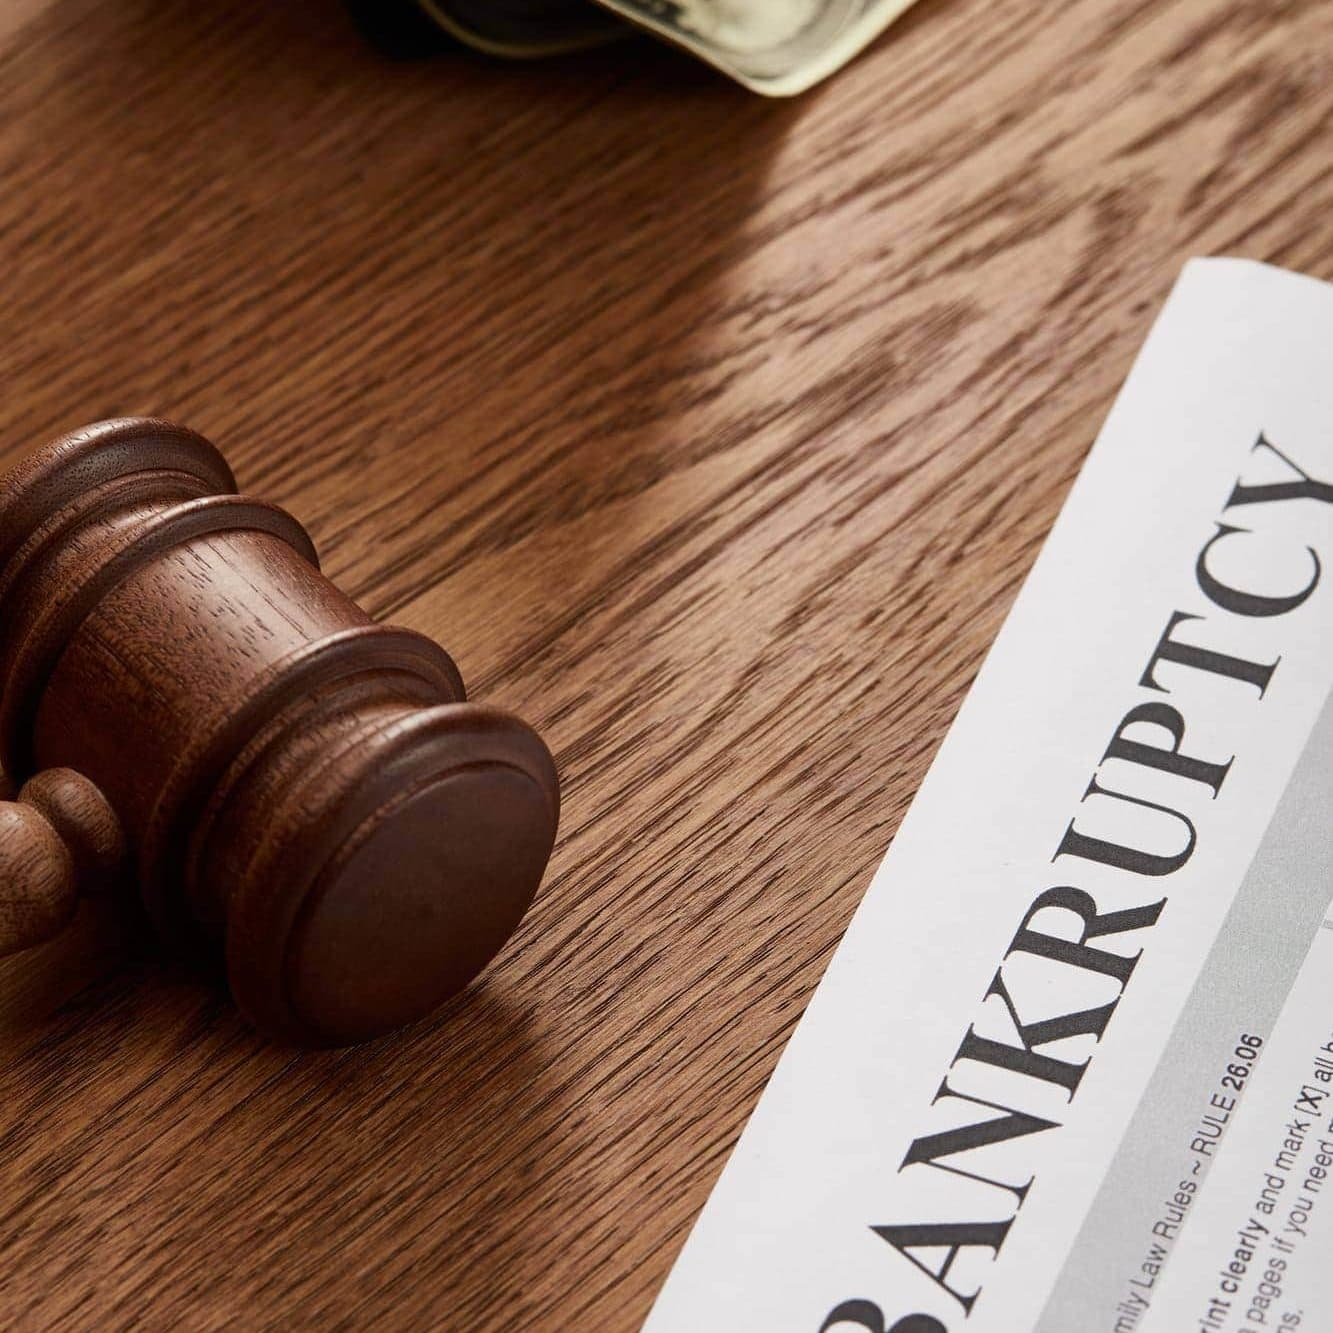 Bankruptcy Lawyer Paperwork Greensboro